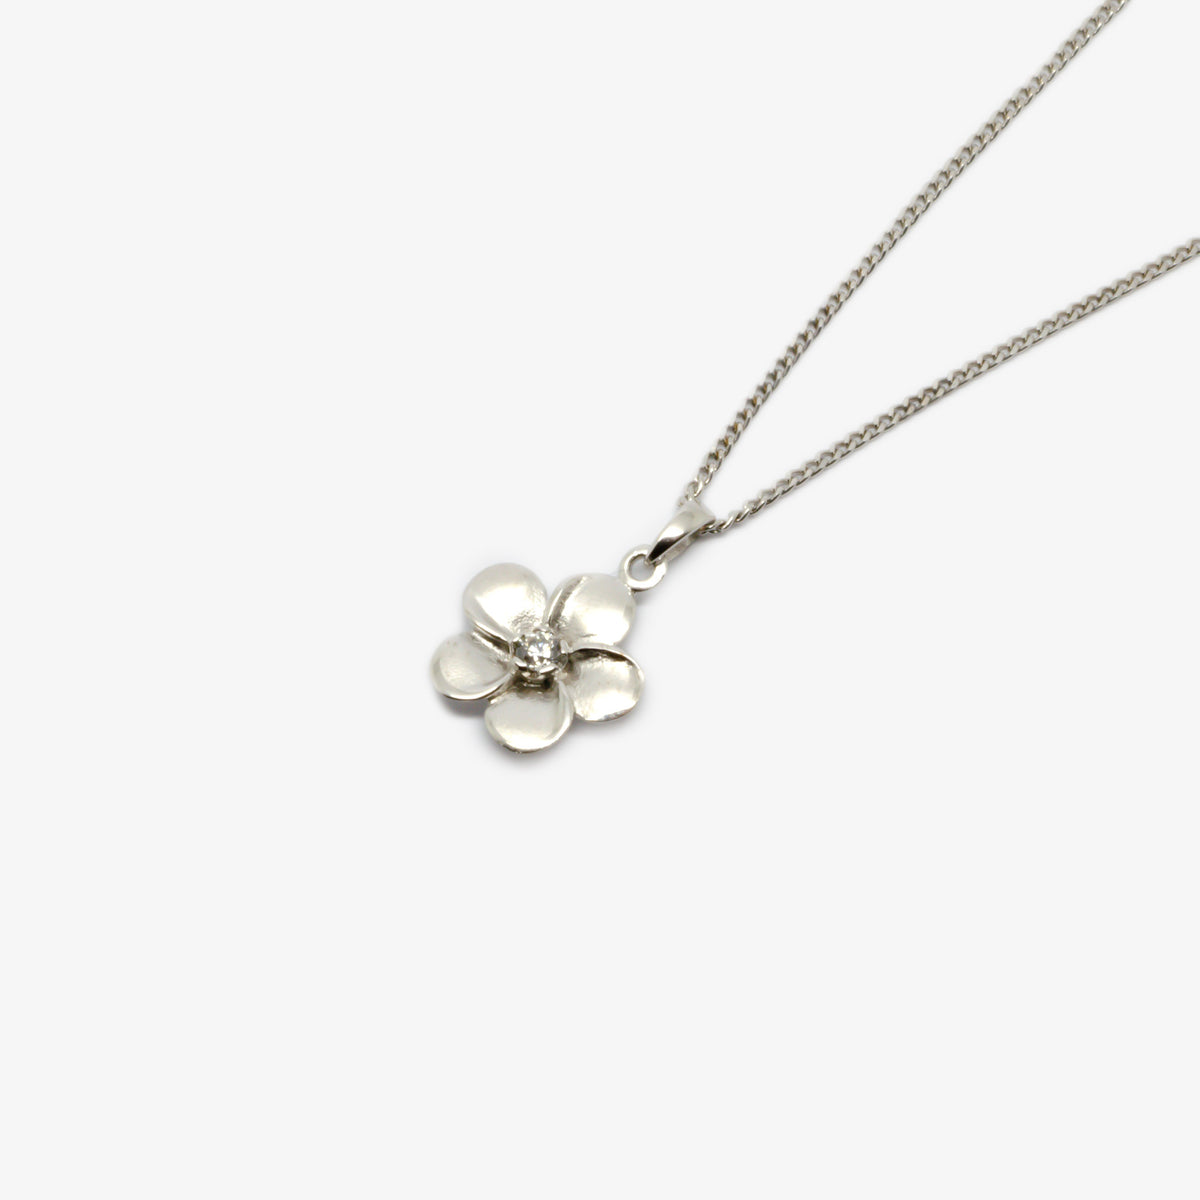 Close-up from the right side of the silver flower pendant necklace.